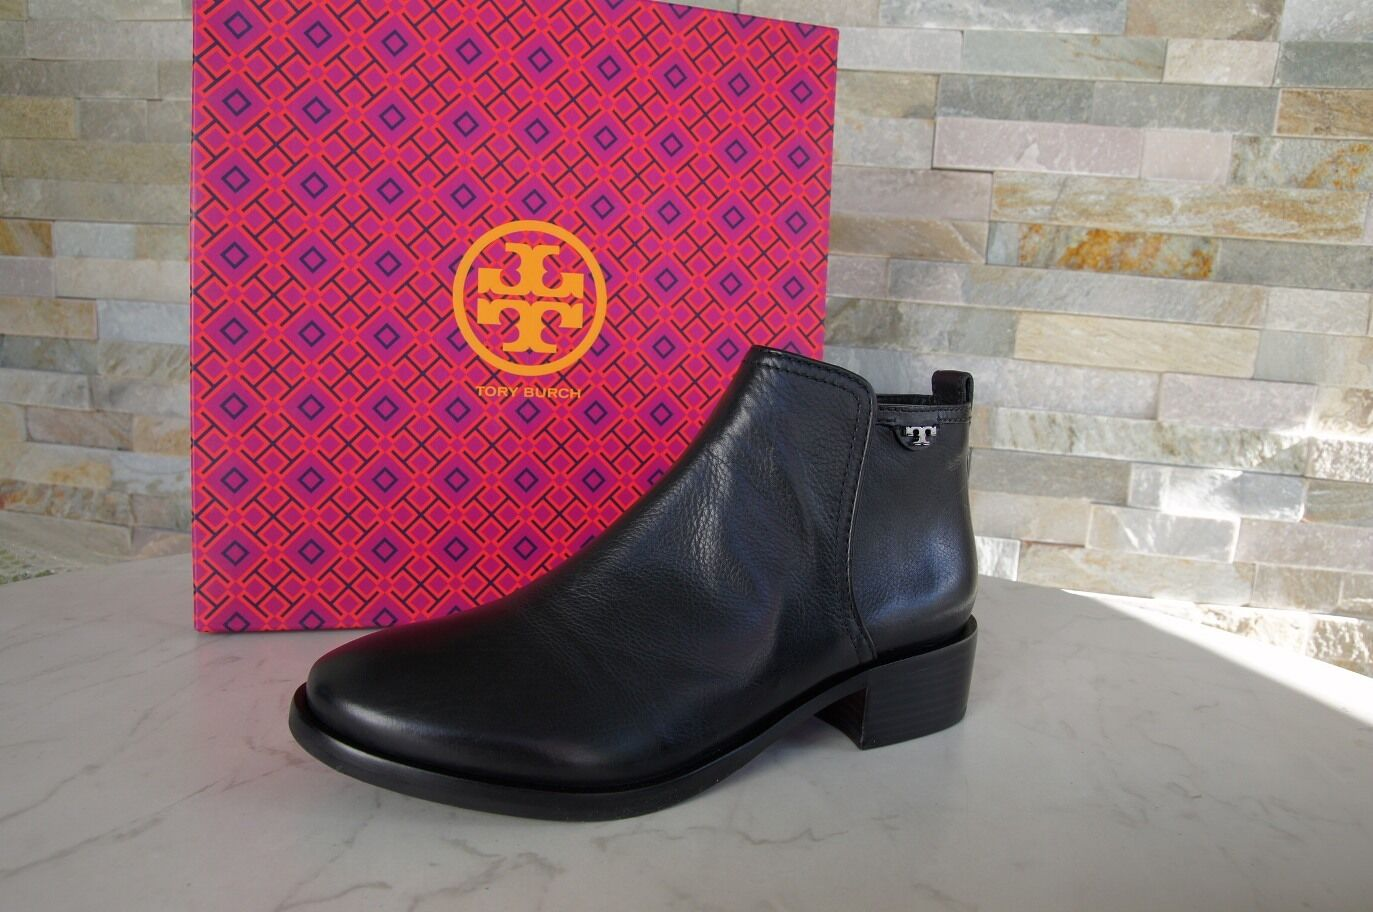 Tory Burch Size 36 6 Ankle Boots shoes shoes 31148341 Black New Previously